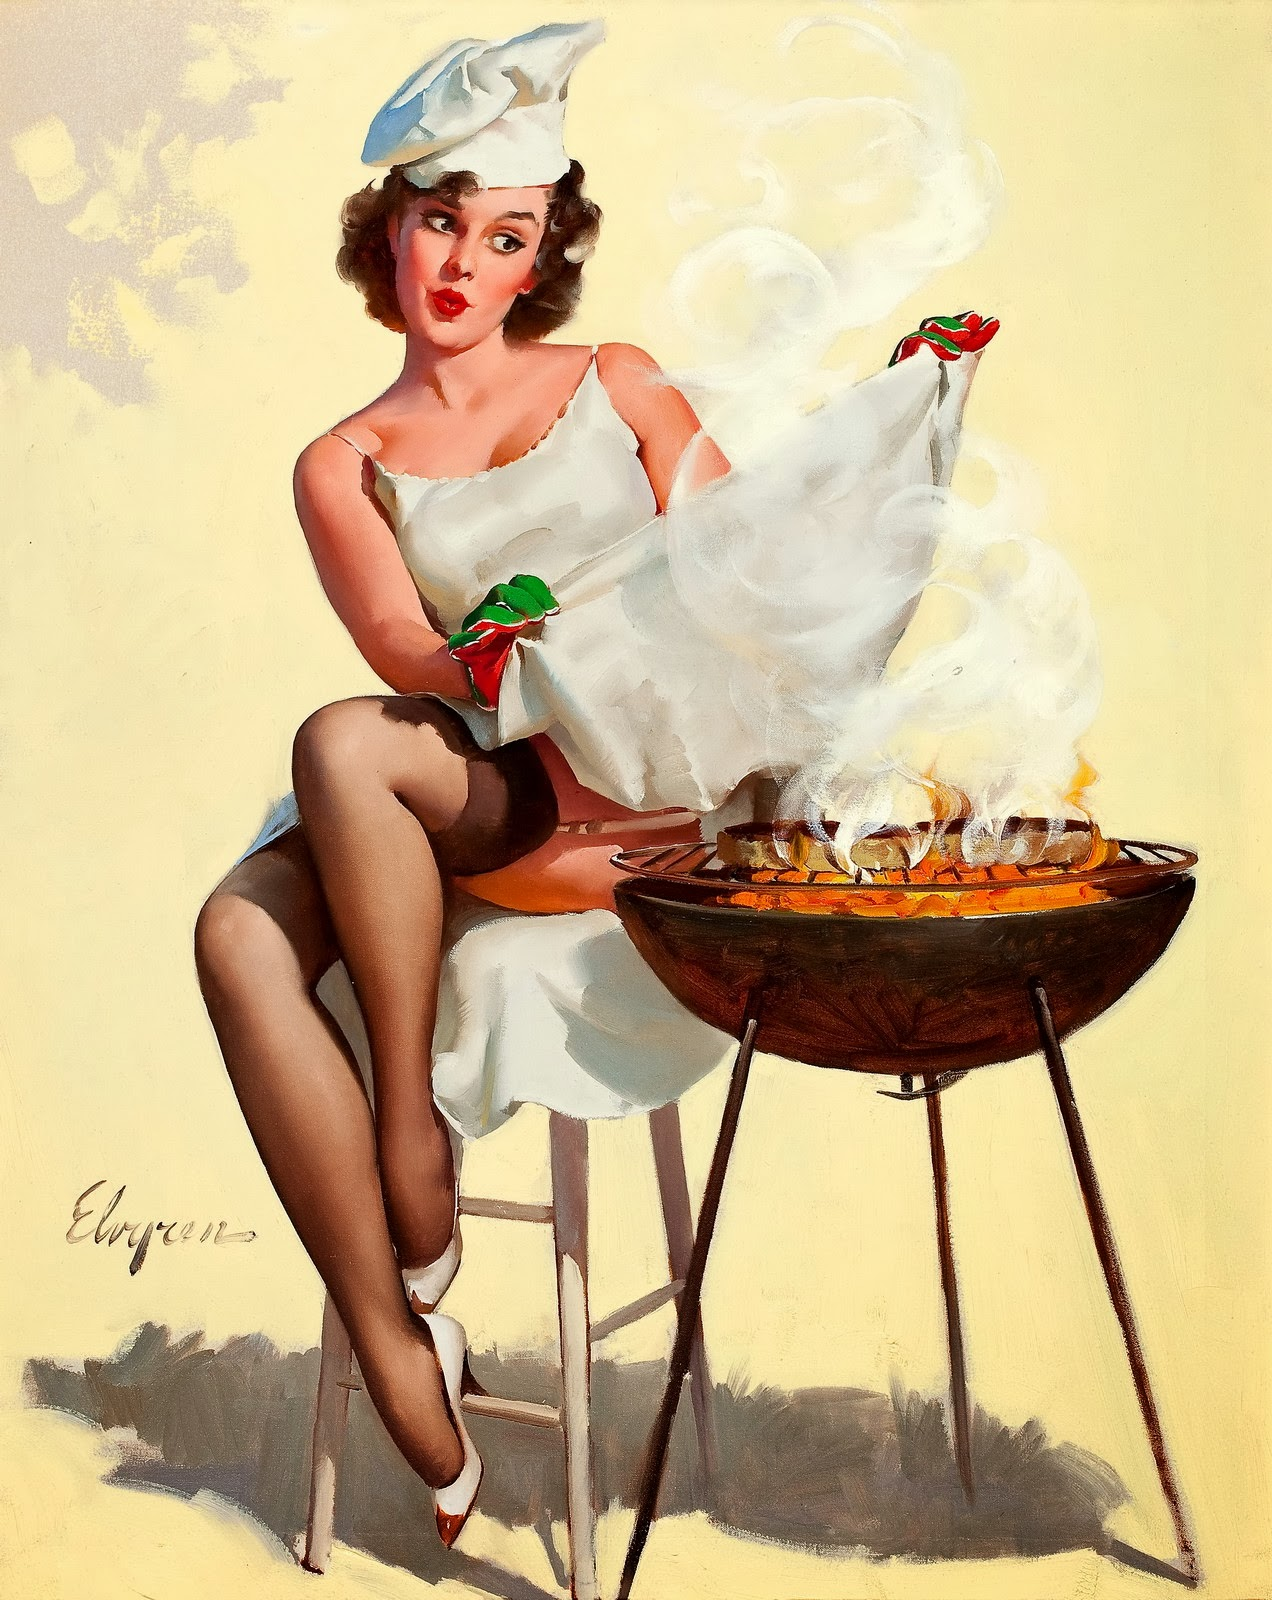 pin up grill masters – pin up and cartoon girls art | vintage and